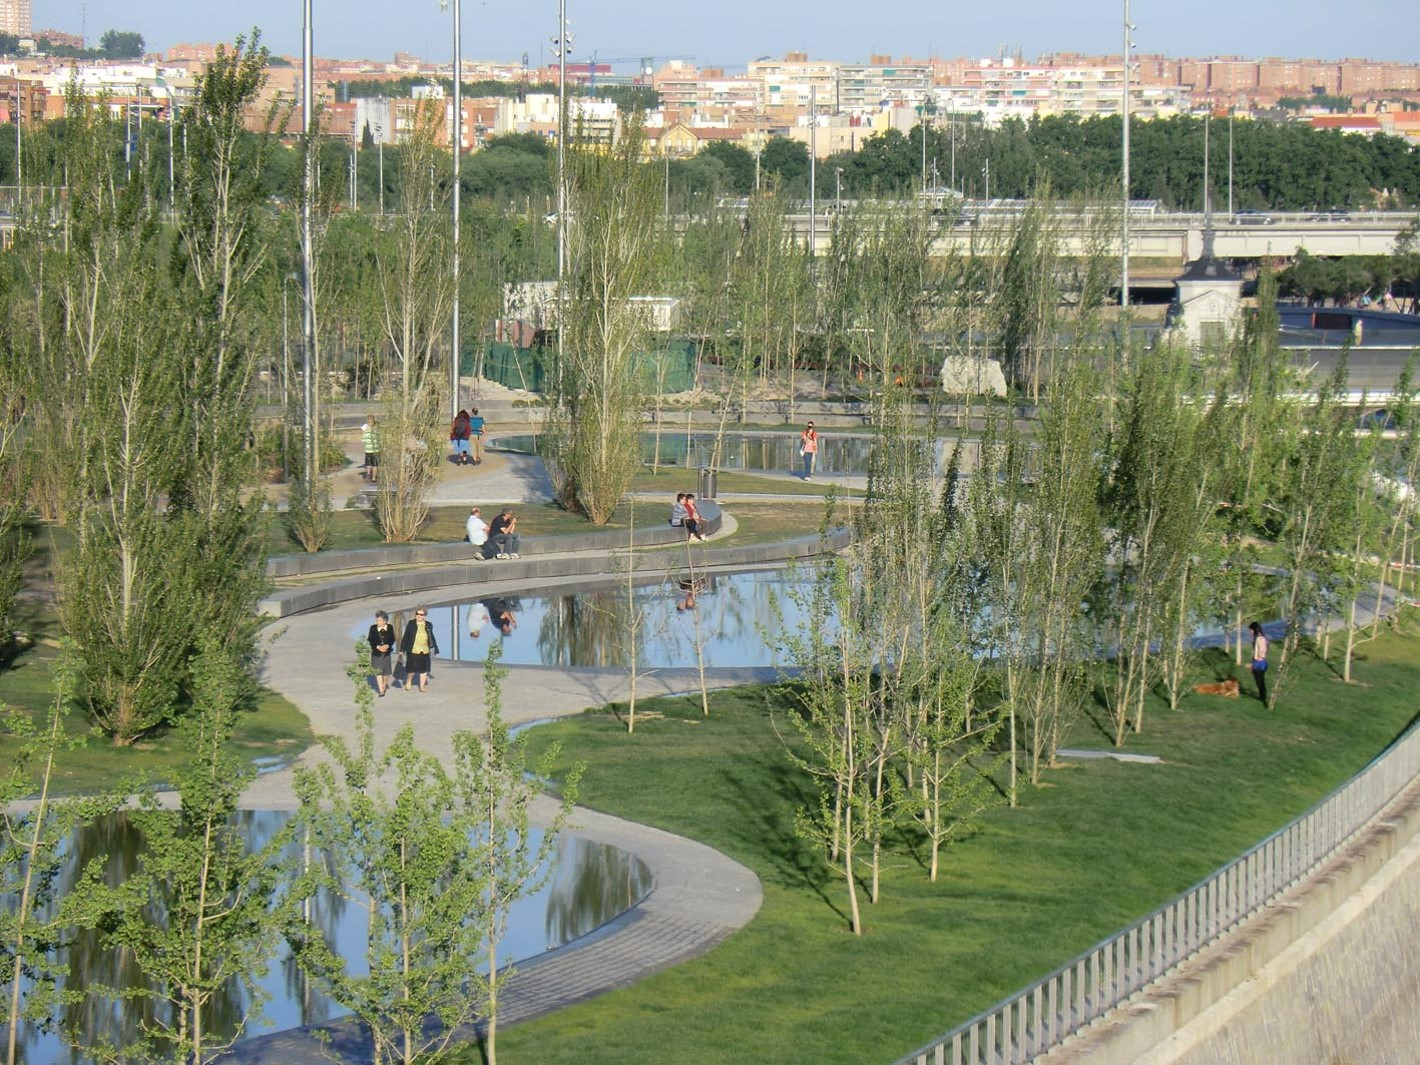 MADRID RÍO, a new green public space